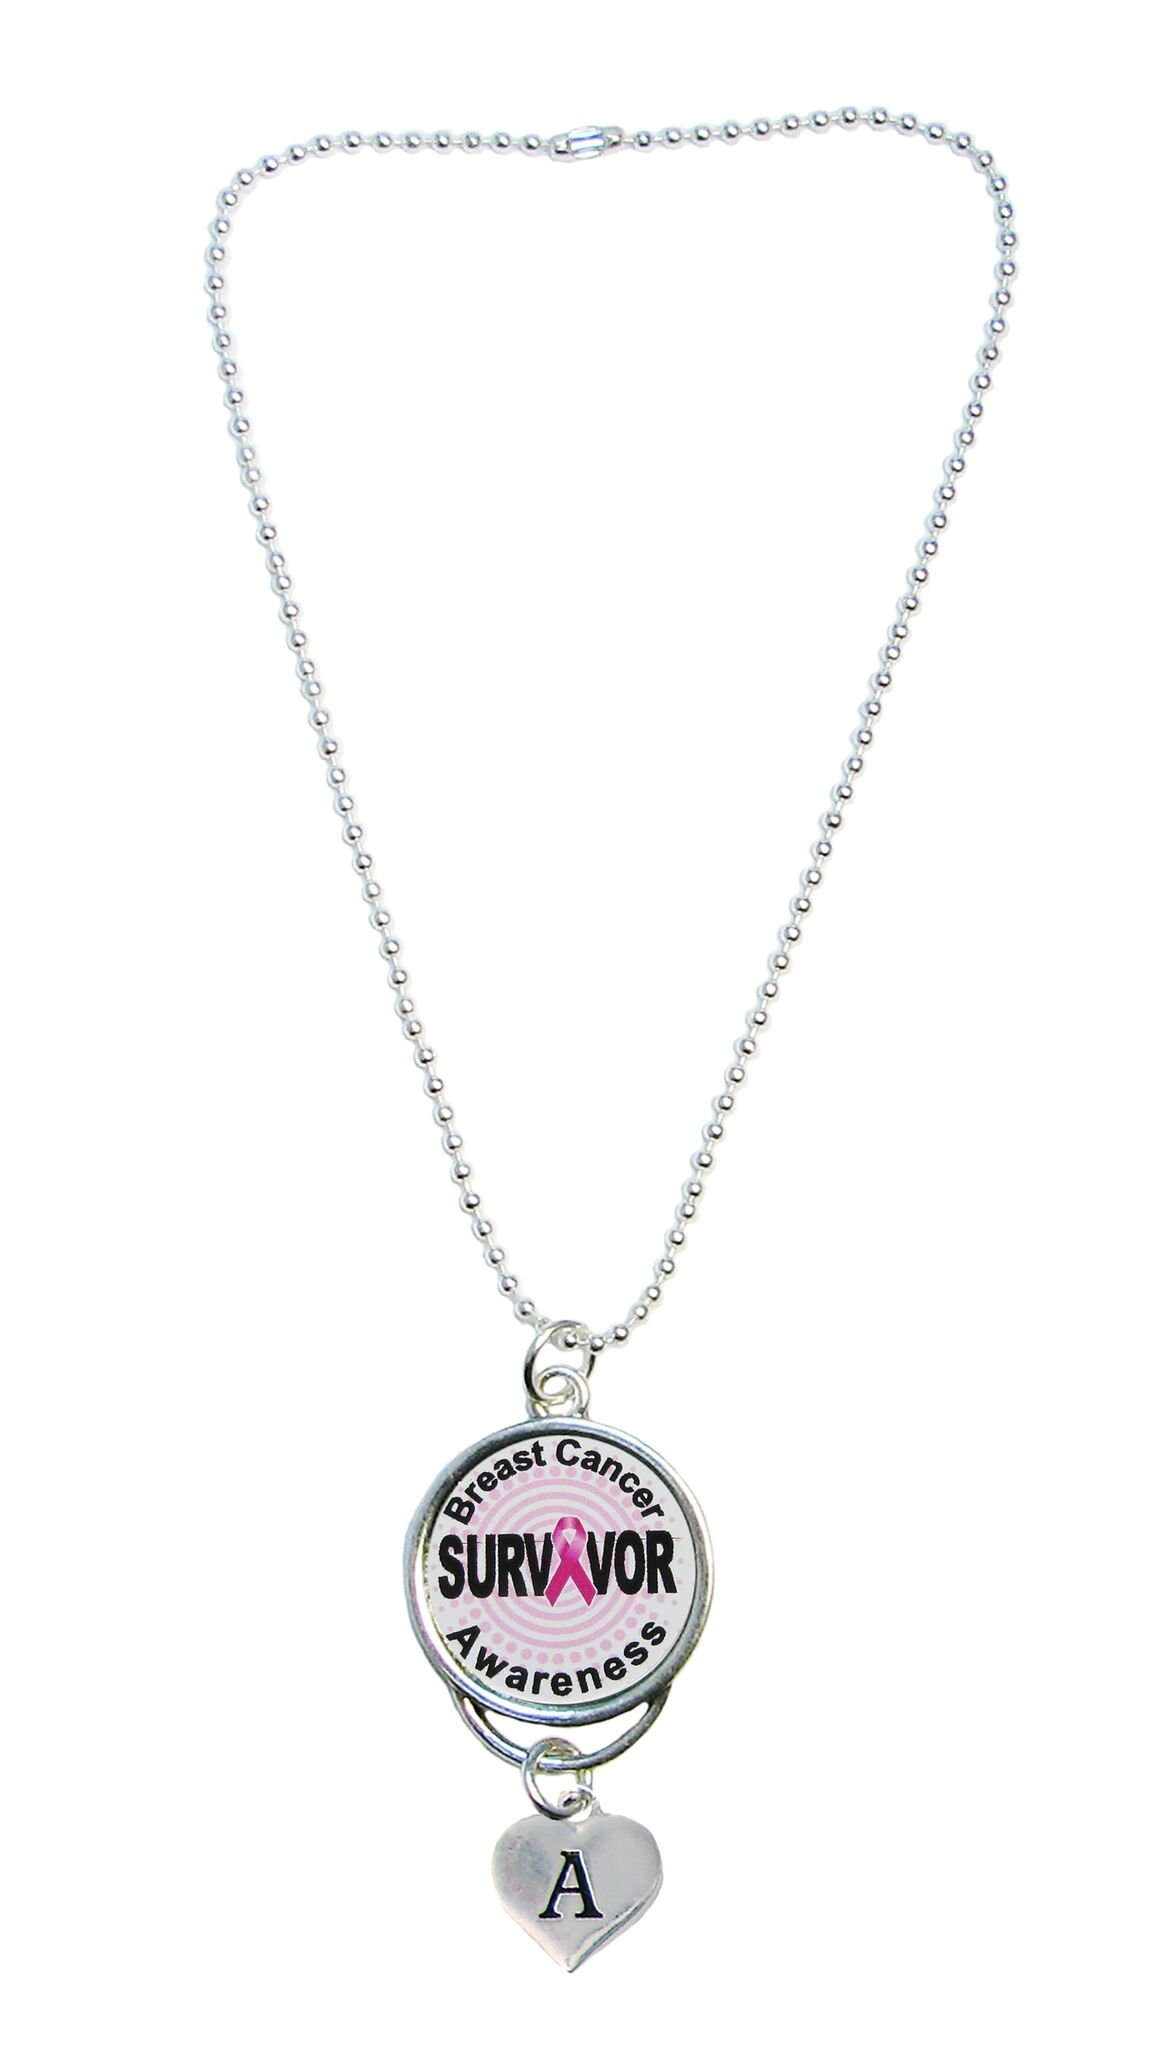 Custom Breast Cancer Awareness Survivor Rear View Mirror Car Choose Initial Jewelry